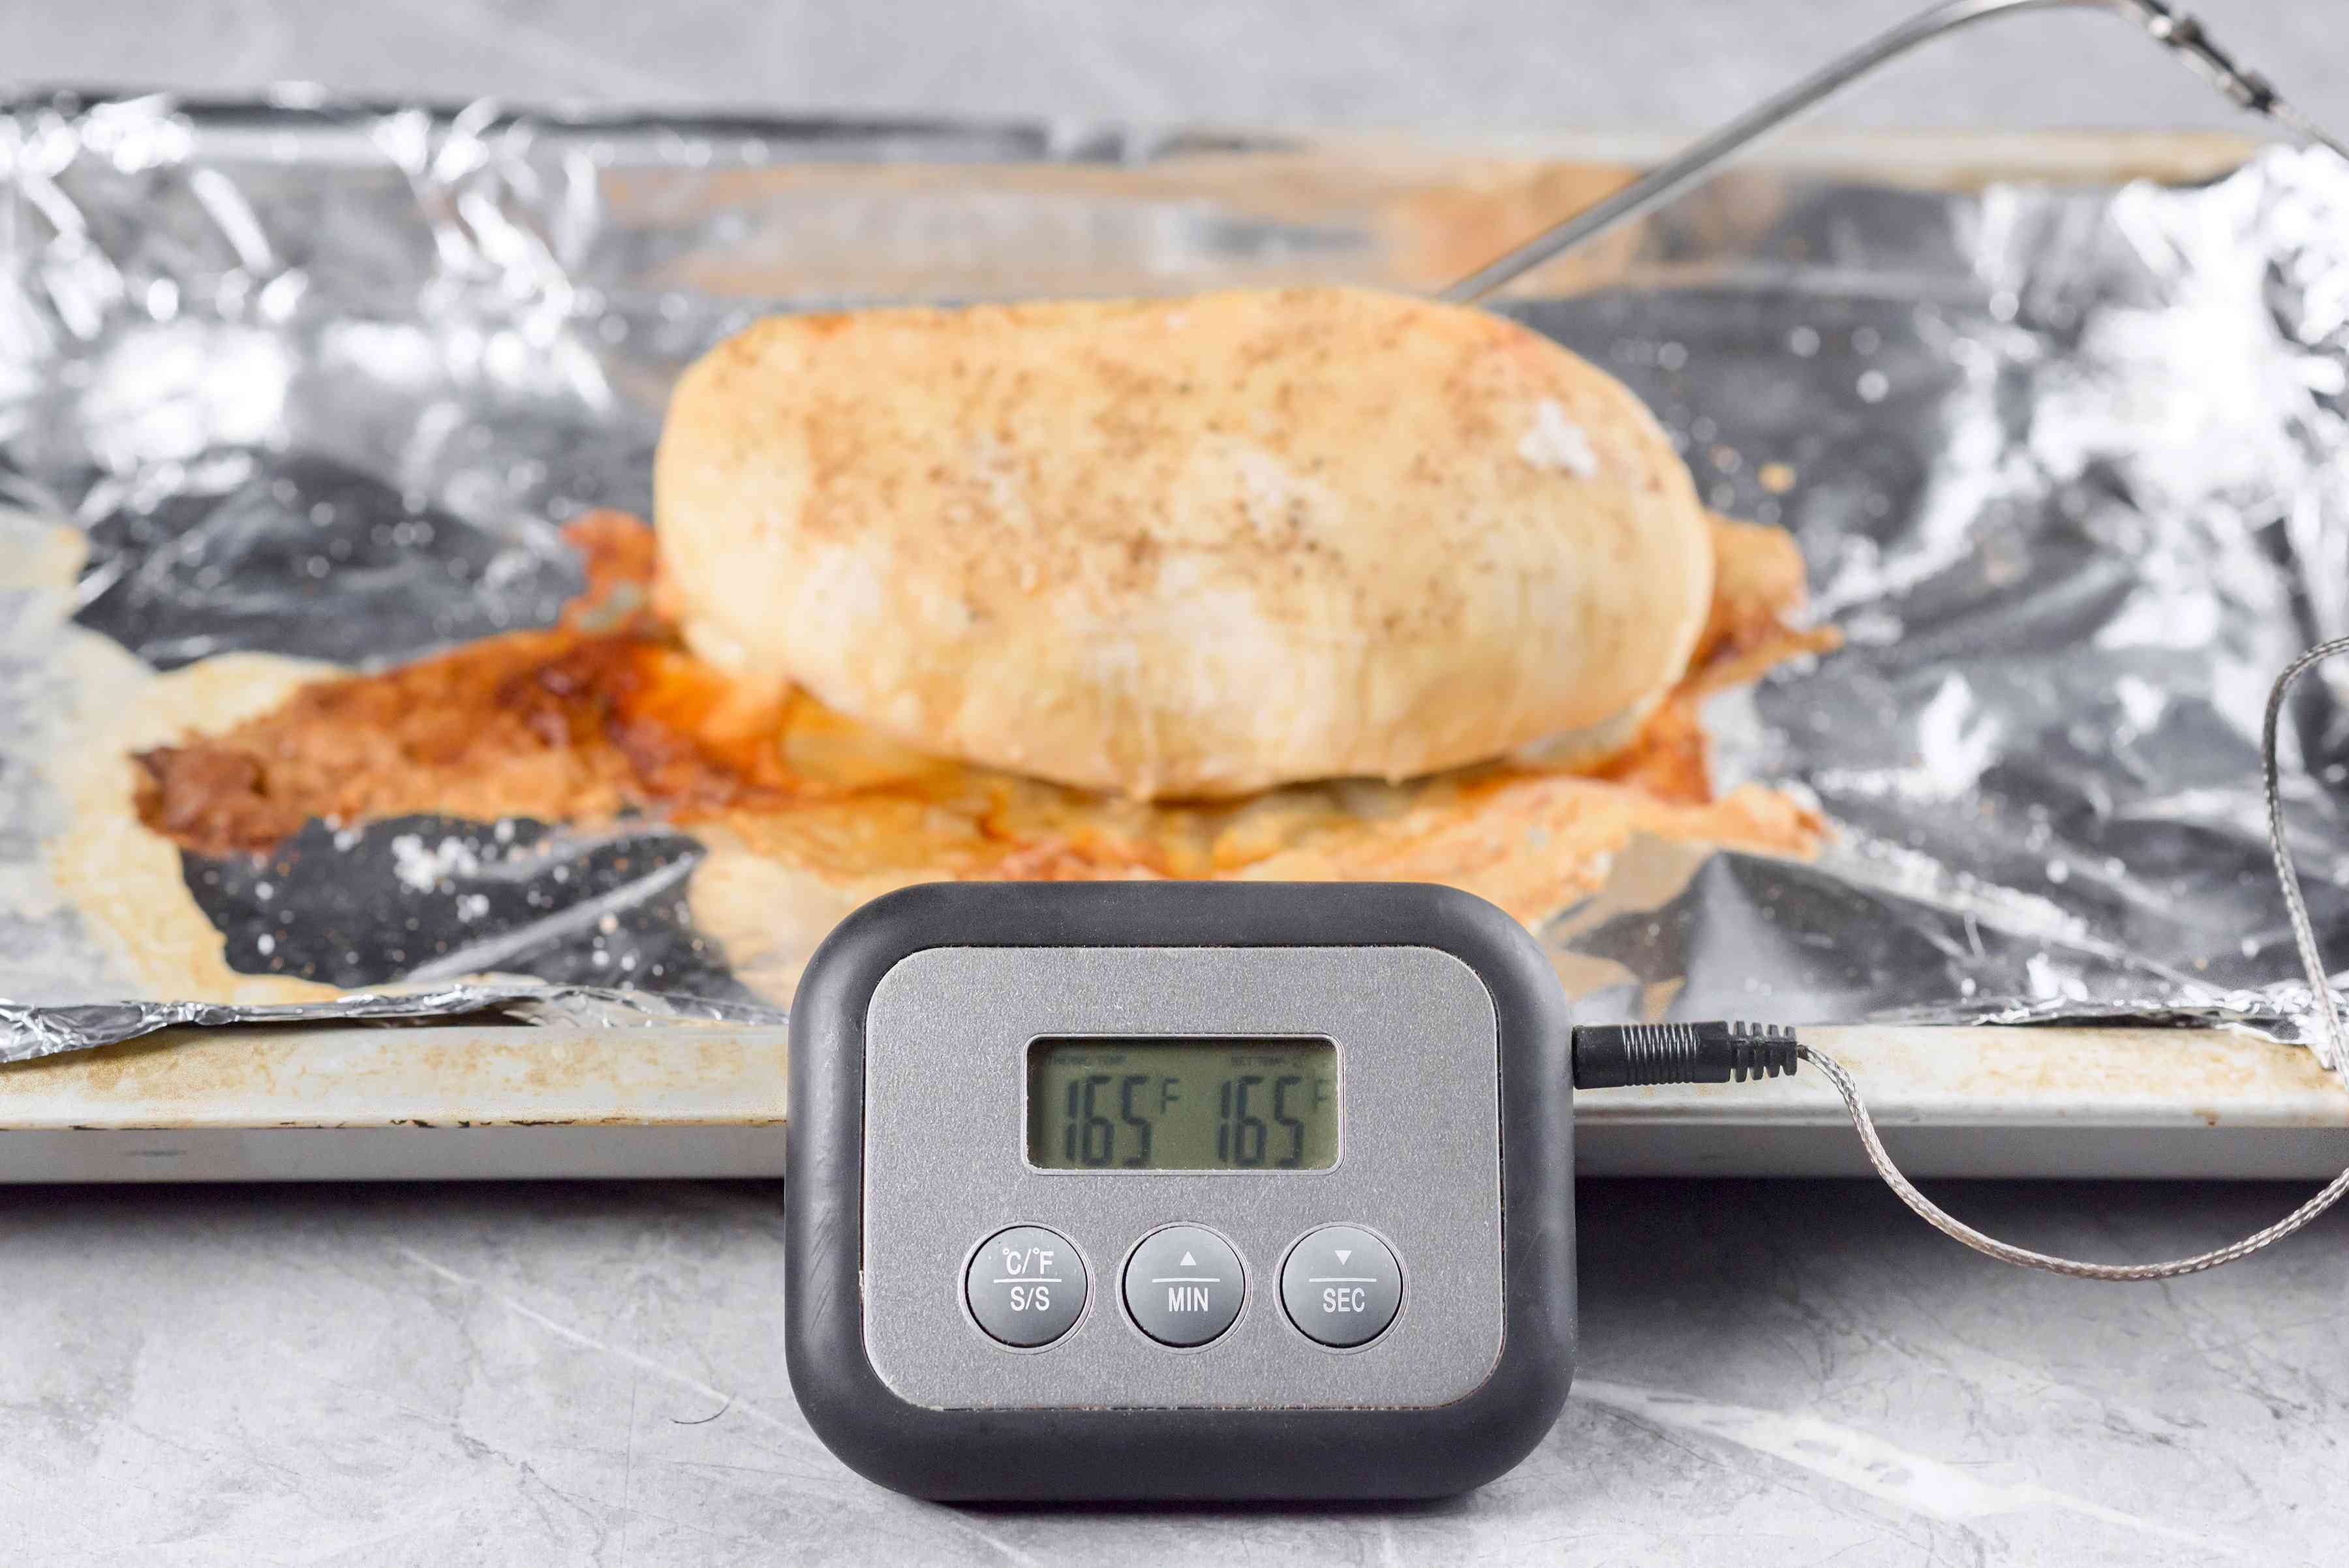 Bake until the chicken registers 165 F on a thermometer